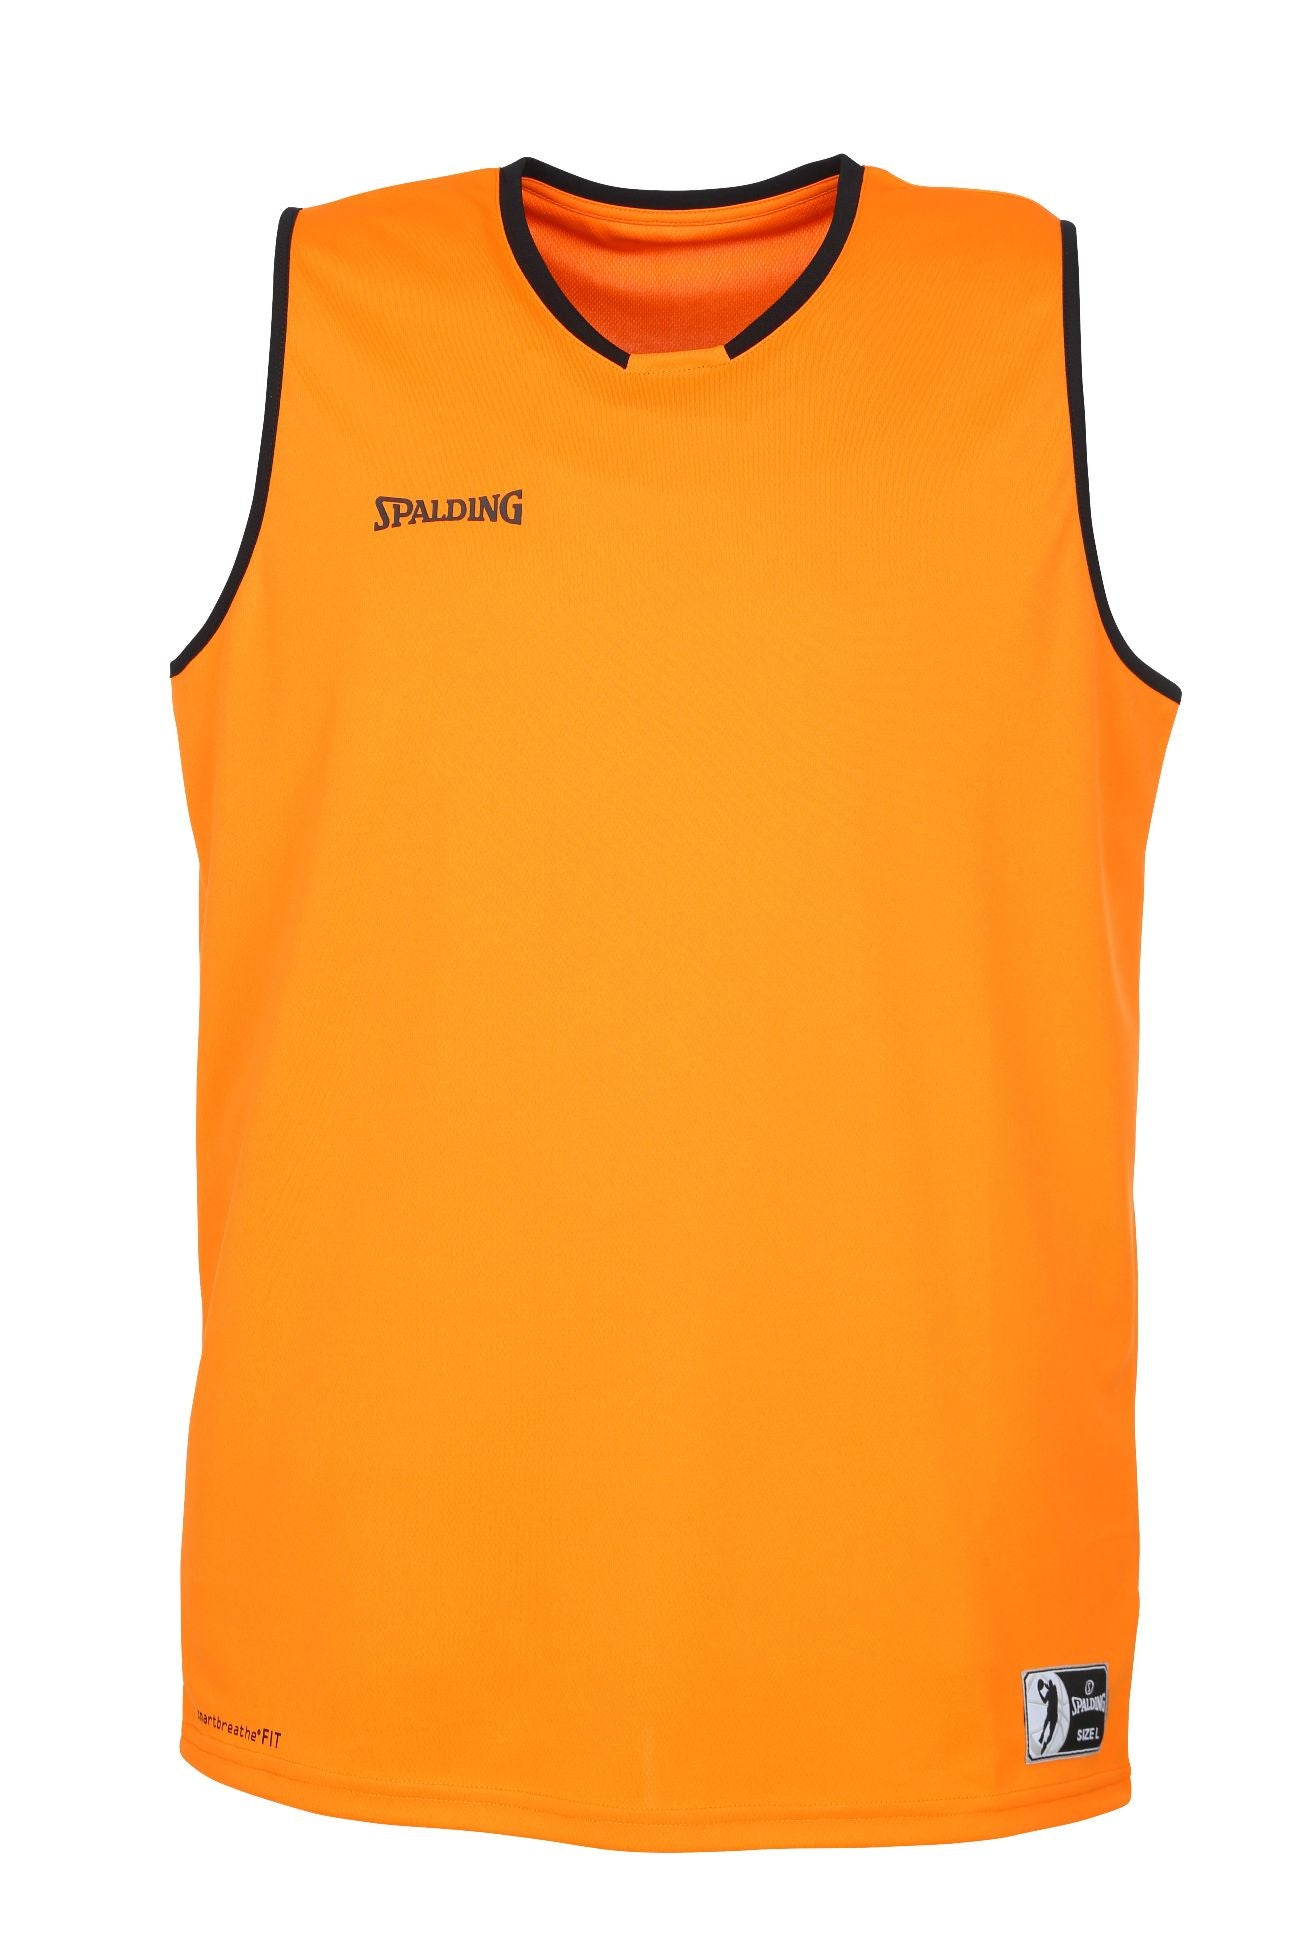 Teamwear - Spalding Kids' Move Jerseys - Orange/Black - SP-3002140-12